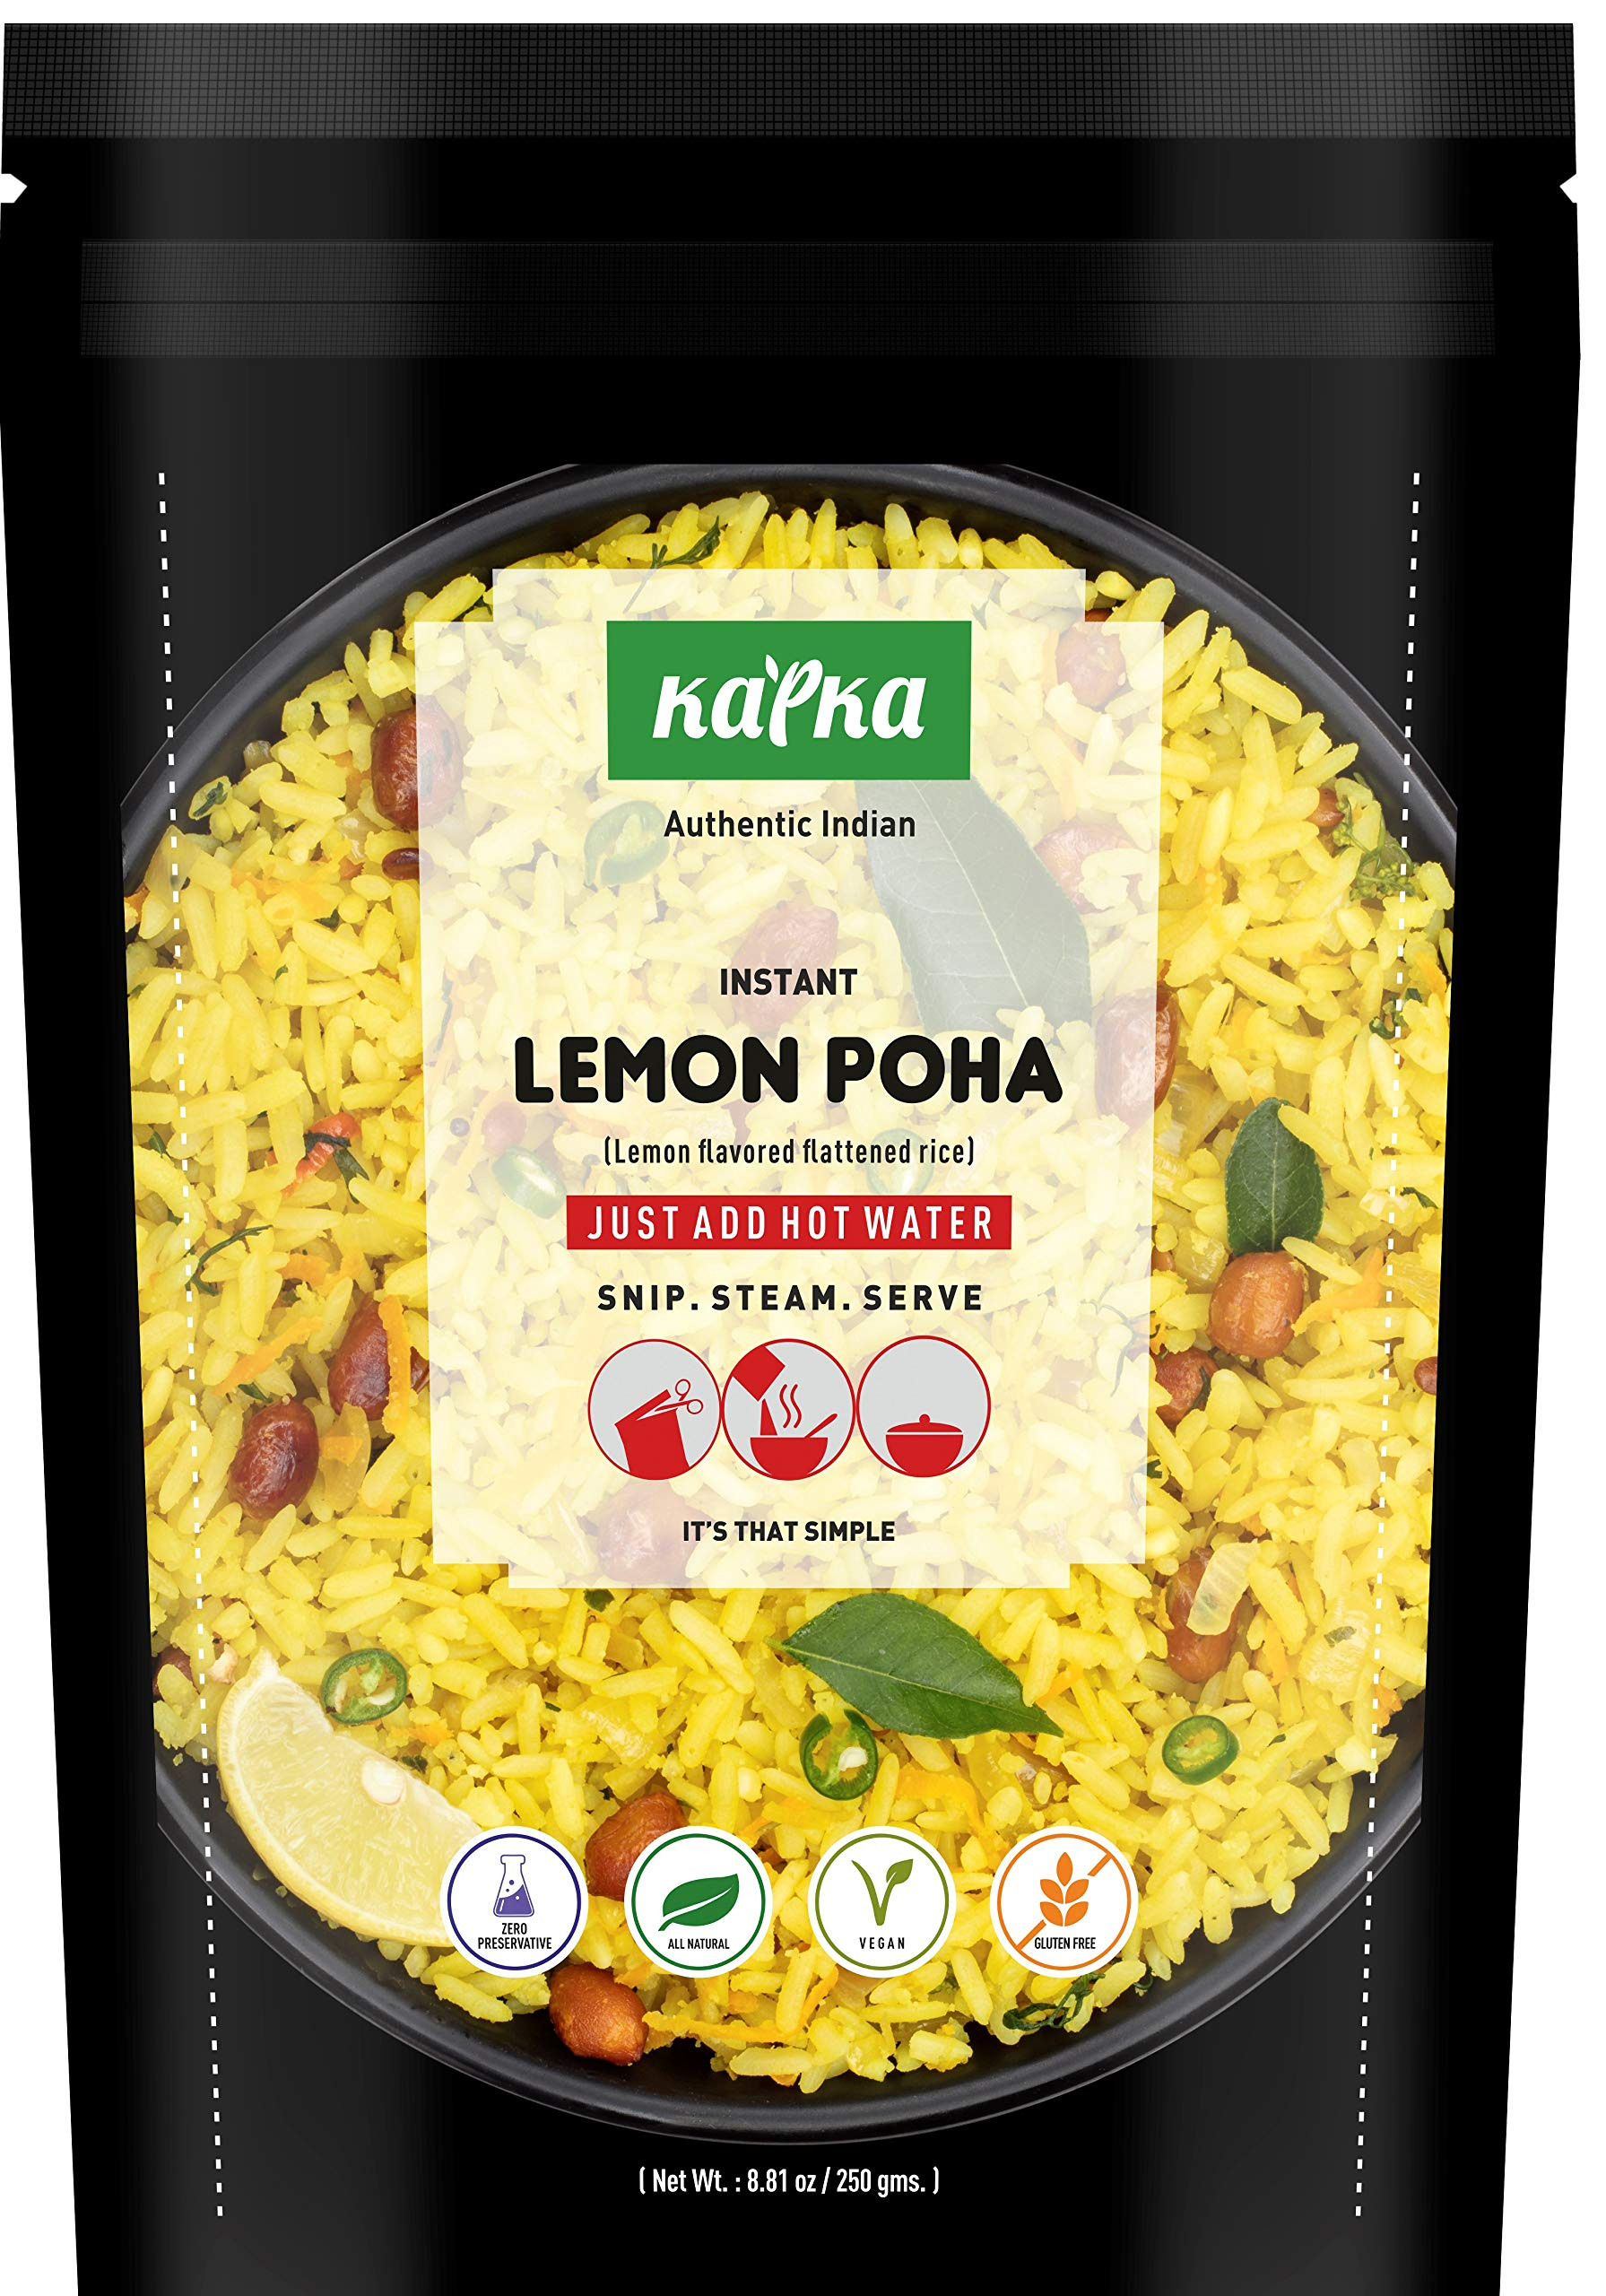 Kapka ''Lemon Poha'' : Vegan & Gluten Free Ready to Cook Meals - All Natural, 100% Vegetarian, Non GMO, Authentic Indian Food, , 8.81oz/250gms (Pack of 3) by Generic